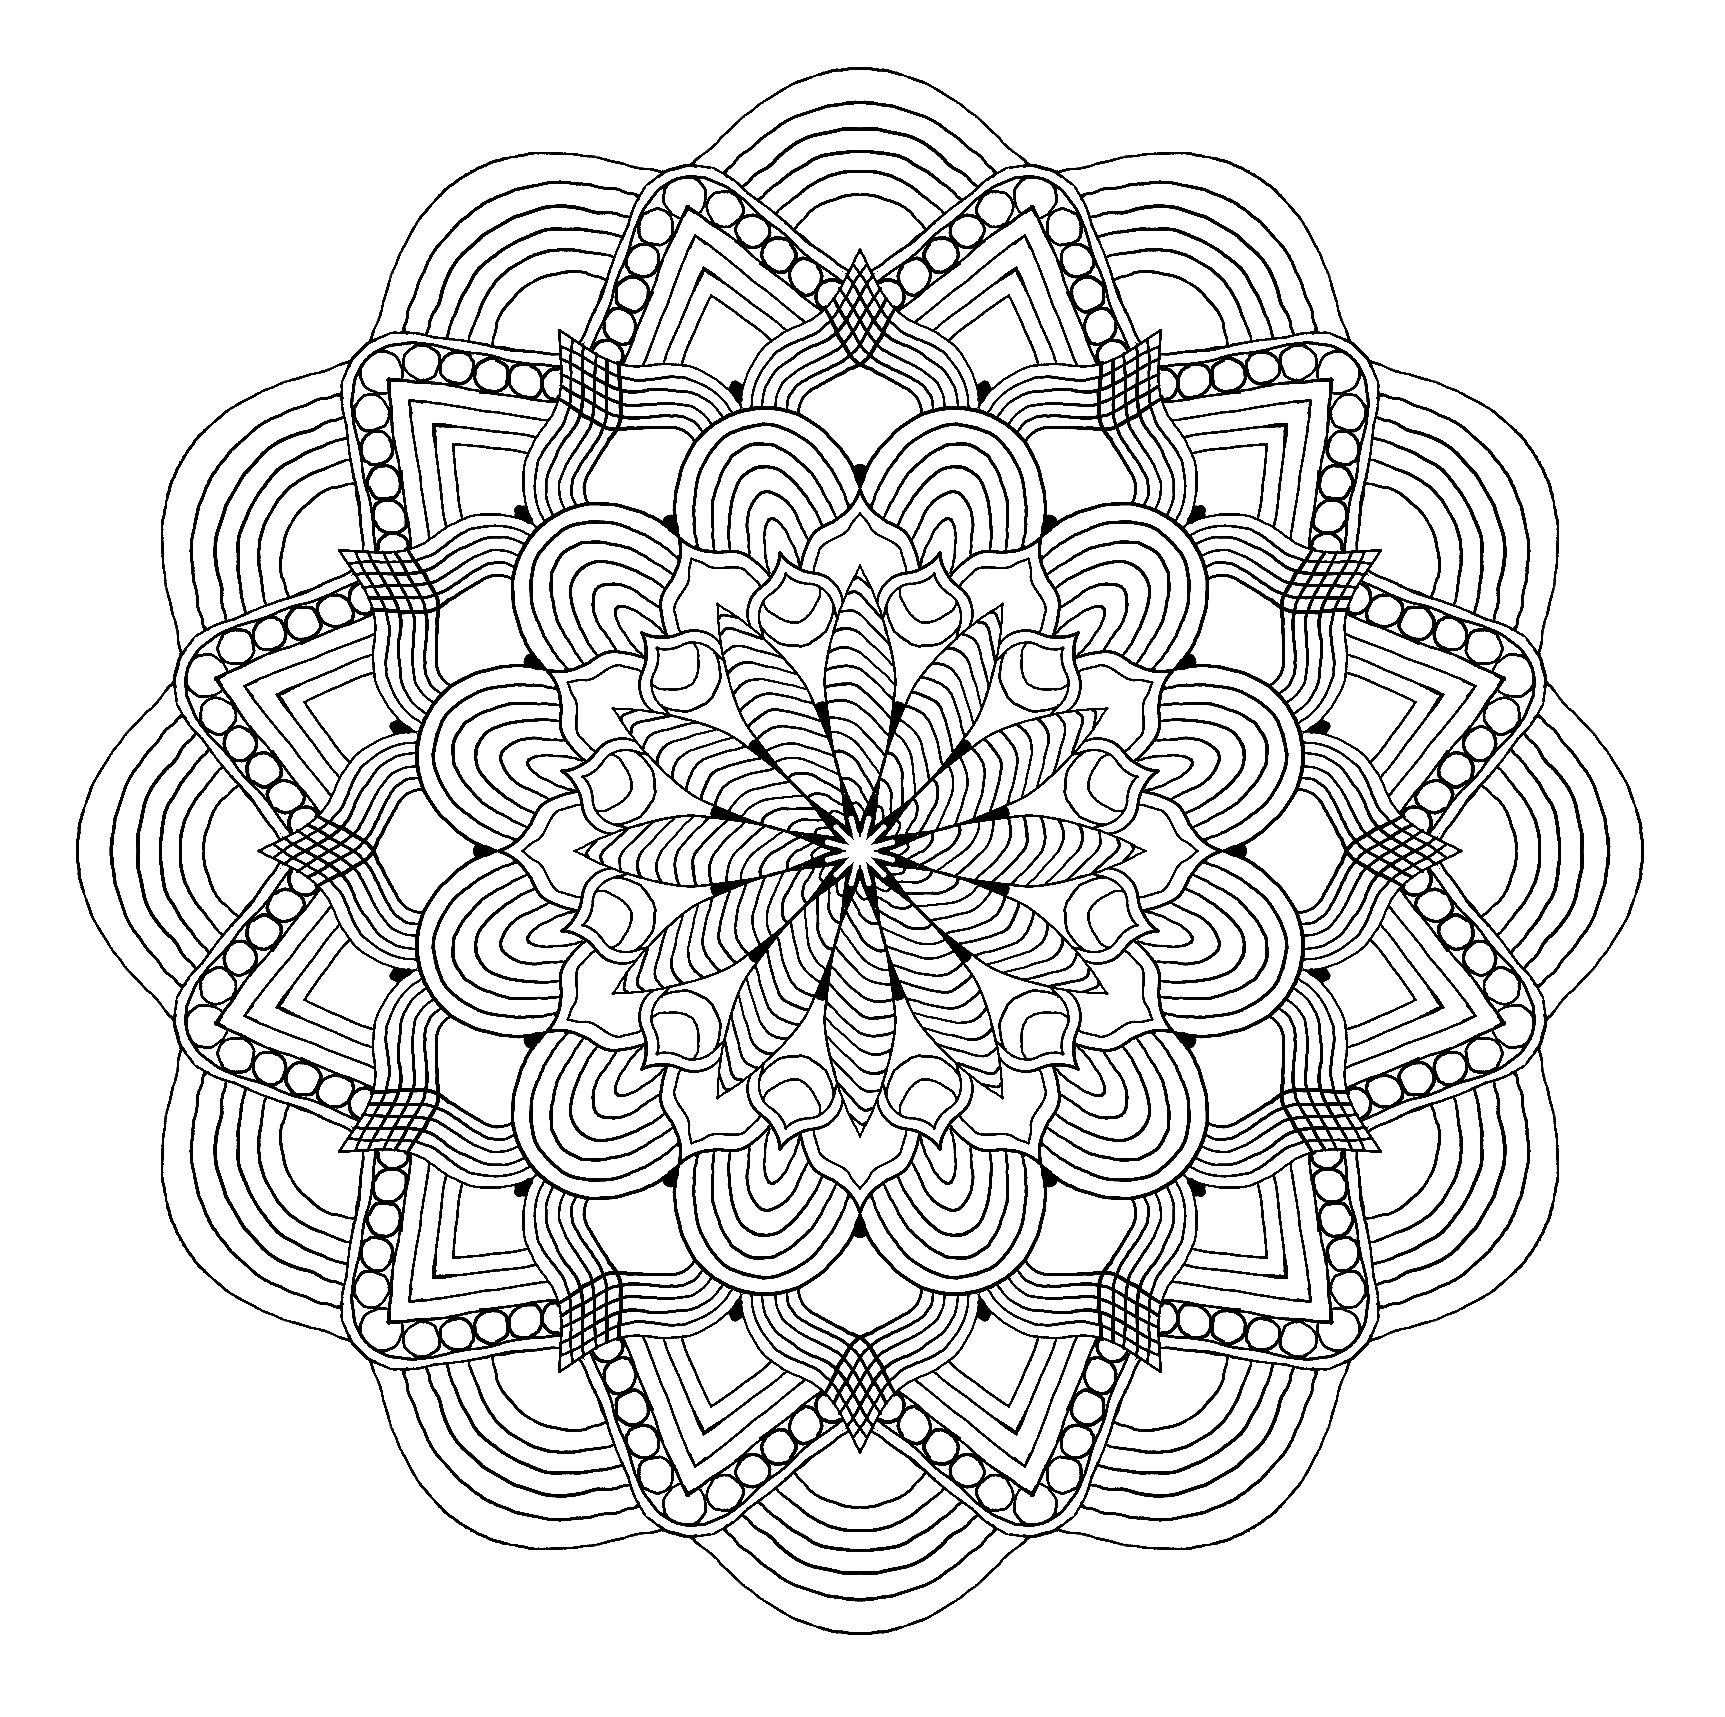 mandala hand coloring pages hamsaart simple hamsa colouring pages page 2 hamsa mandala hand pages coloring